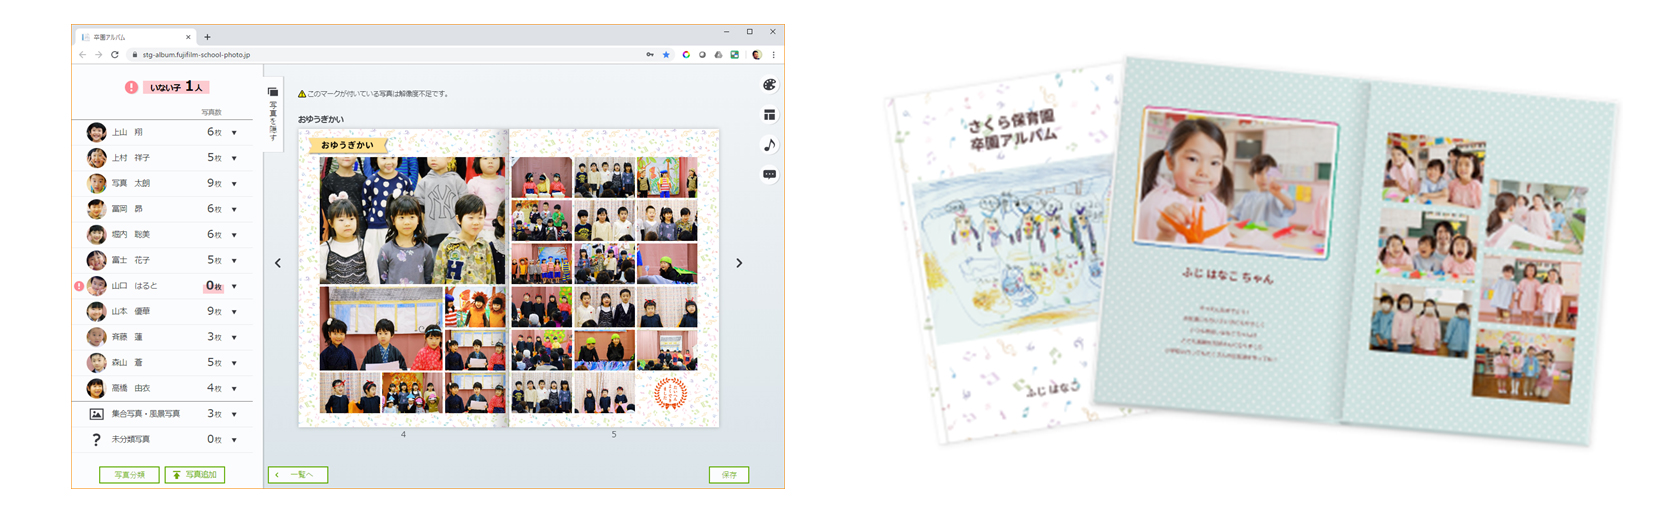 "[image]3) On-line albums ordering service ""FUJIFILM School Photo, Graduation Album Editor"""